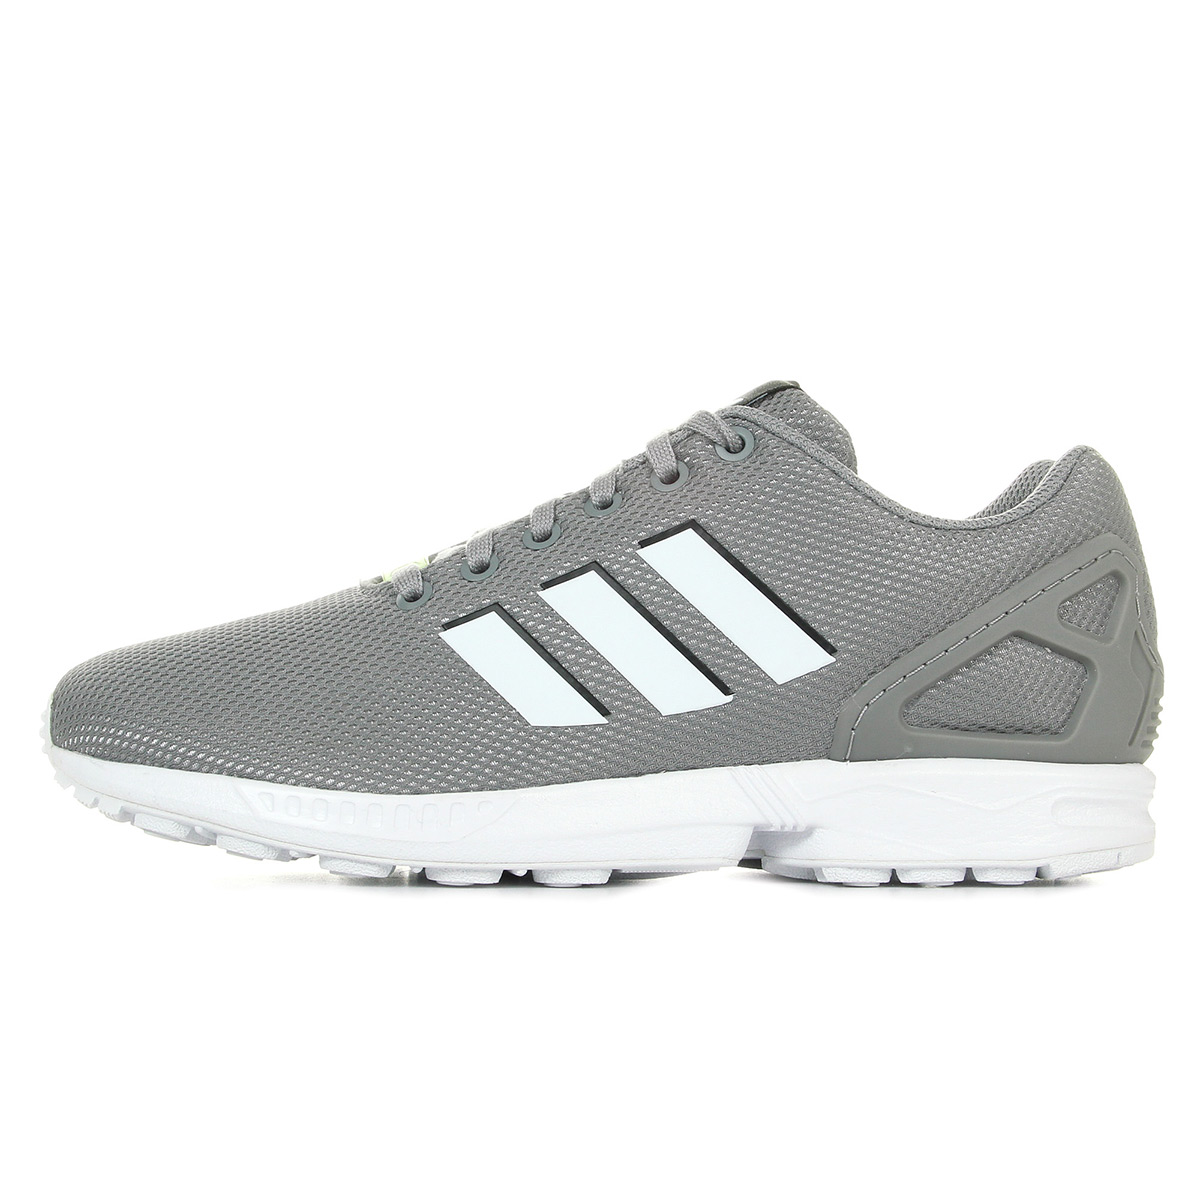 15d470a816 adidas Zx Flux BY9414, Baskets mode homme